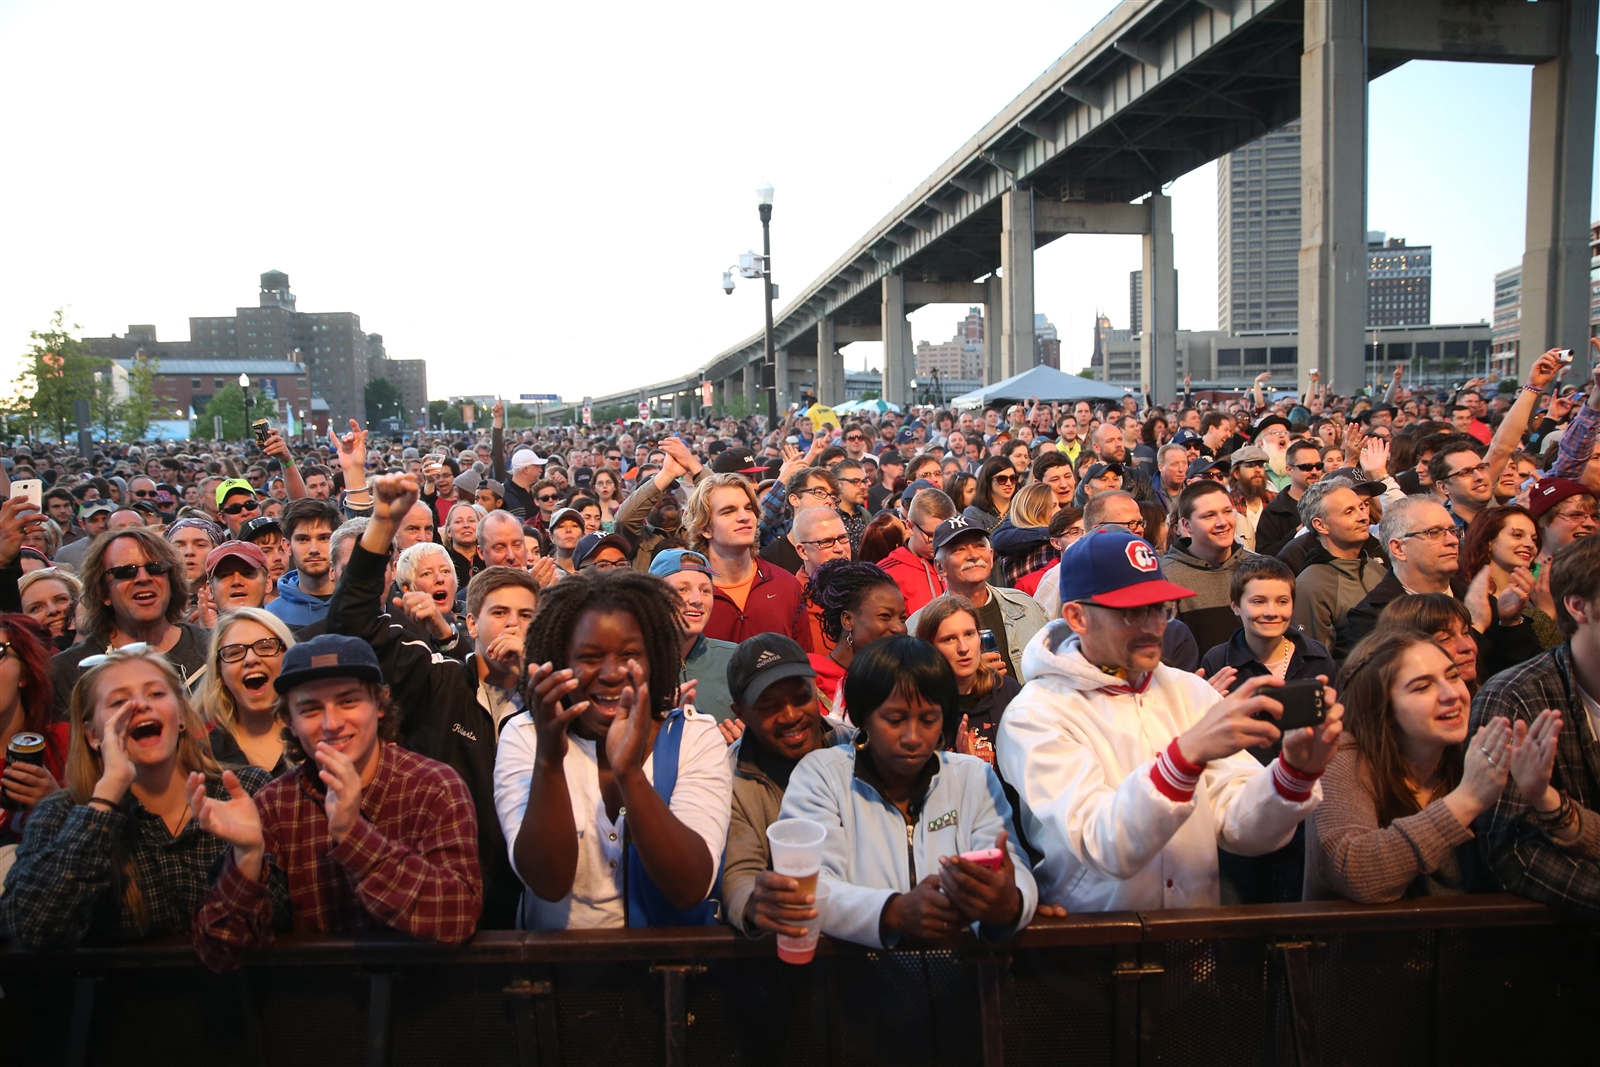 The Thursday Canalside concerts will now carry a $5 fee. (Sharon Cantillon/Buffalo News file photo)